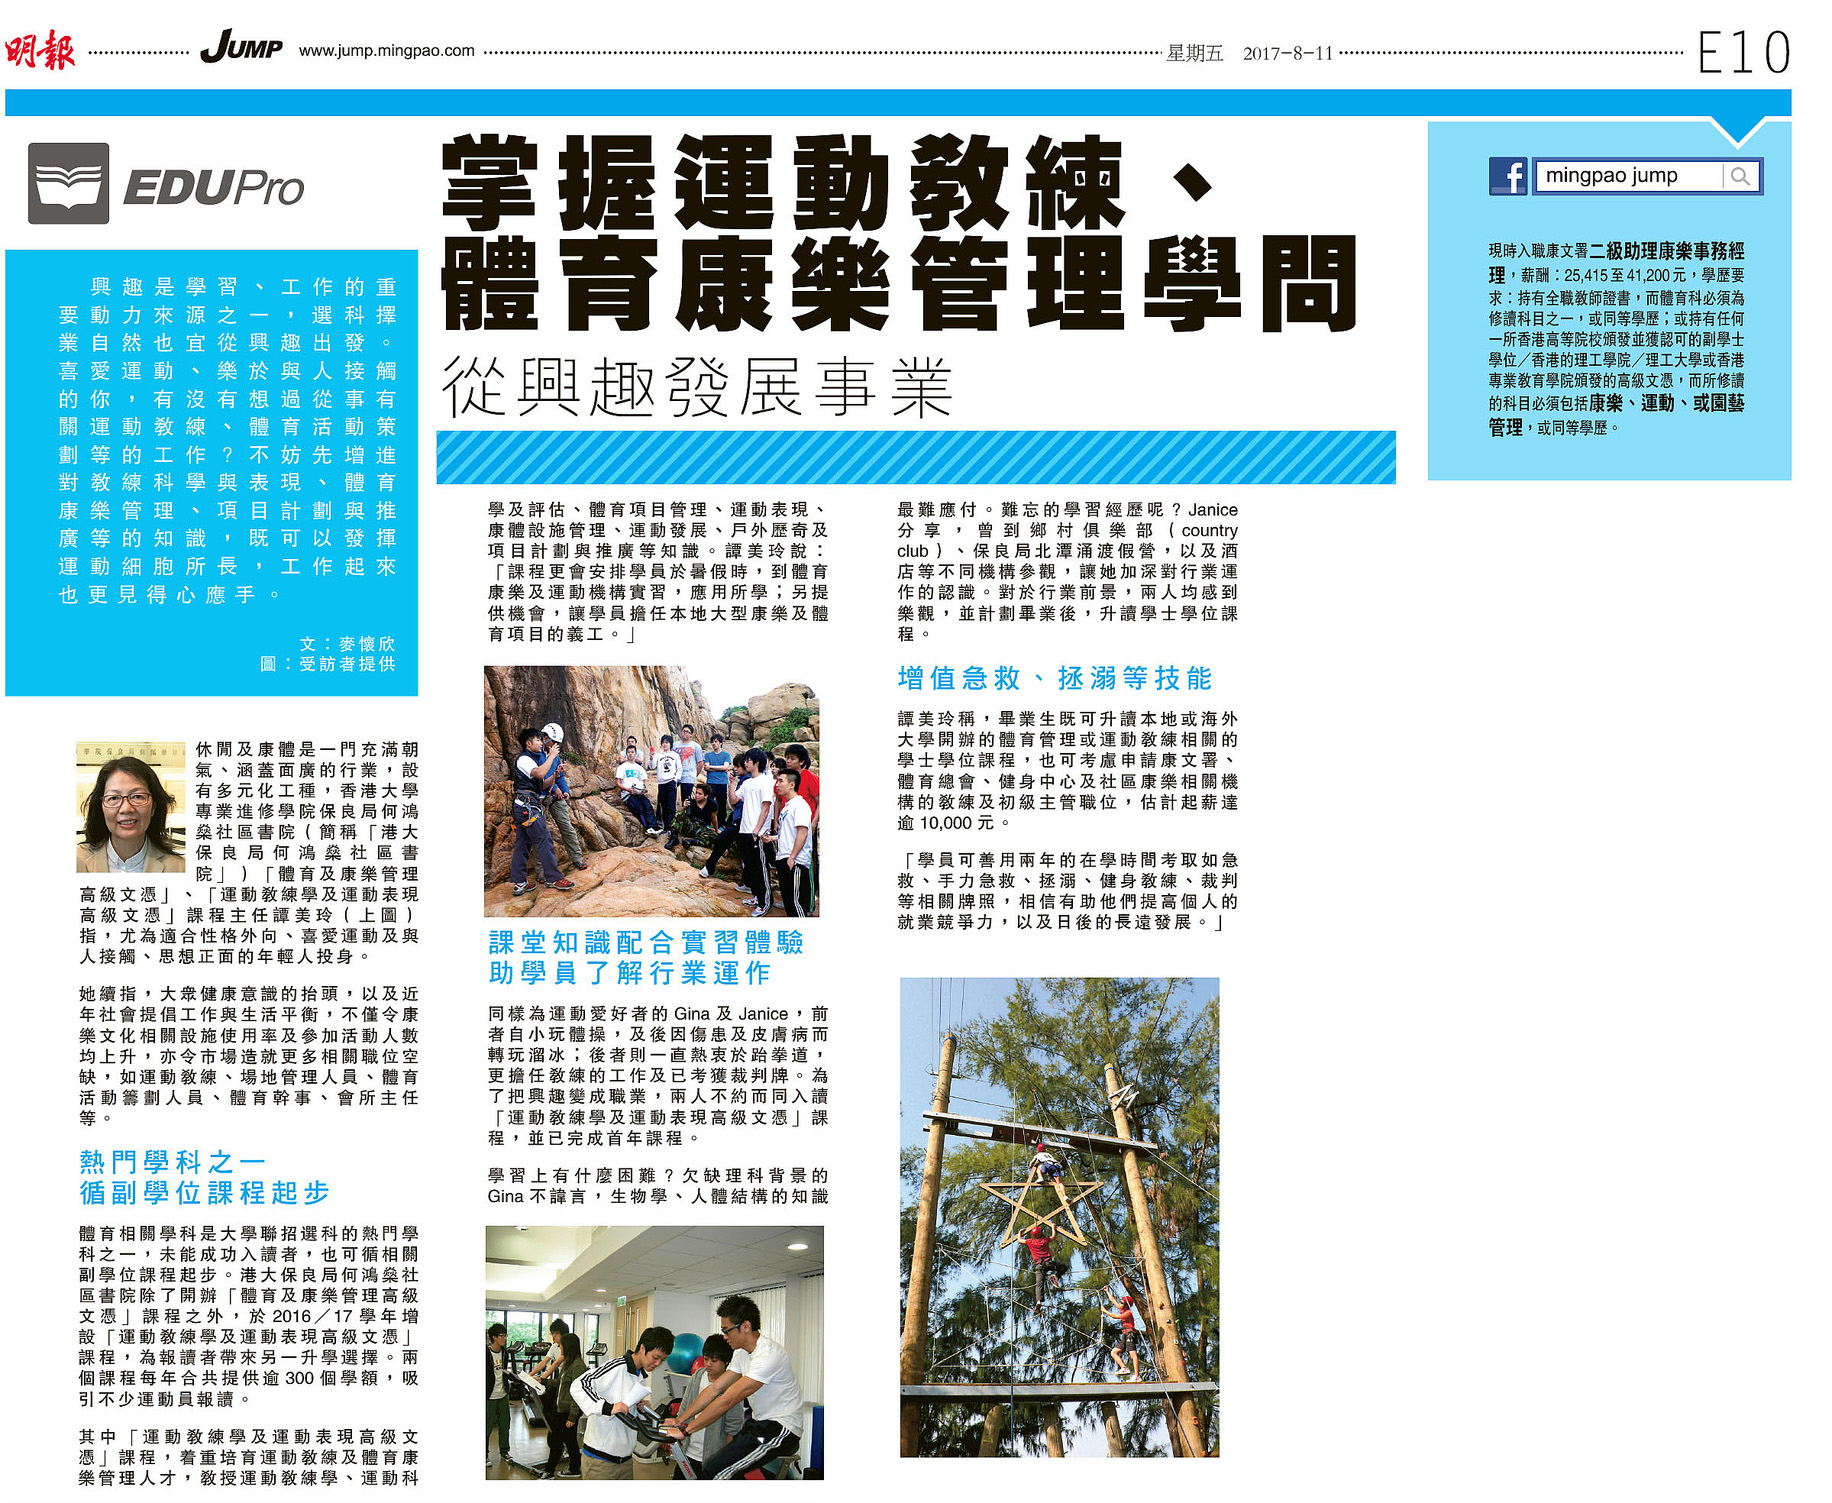 mingpao interview